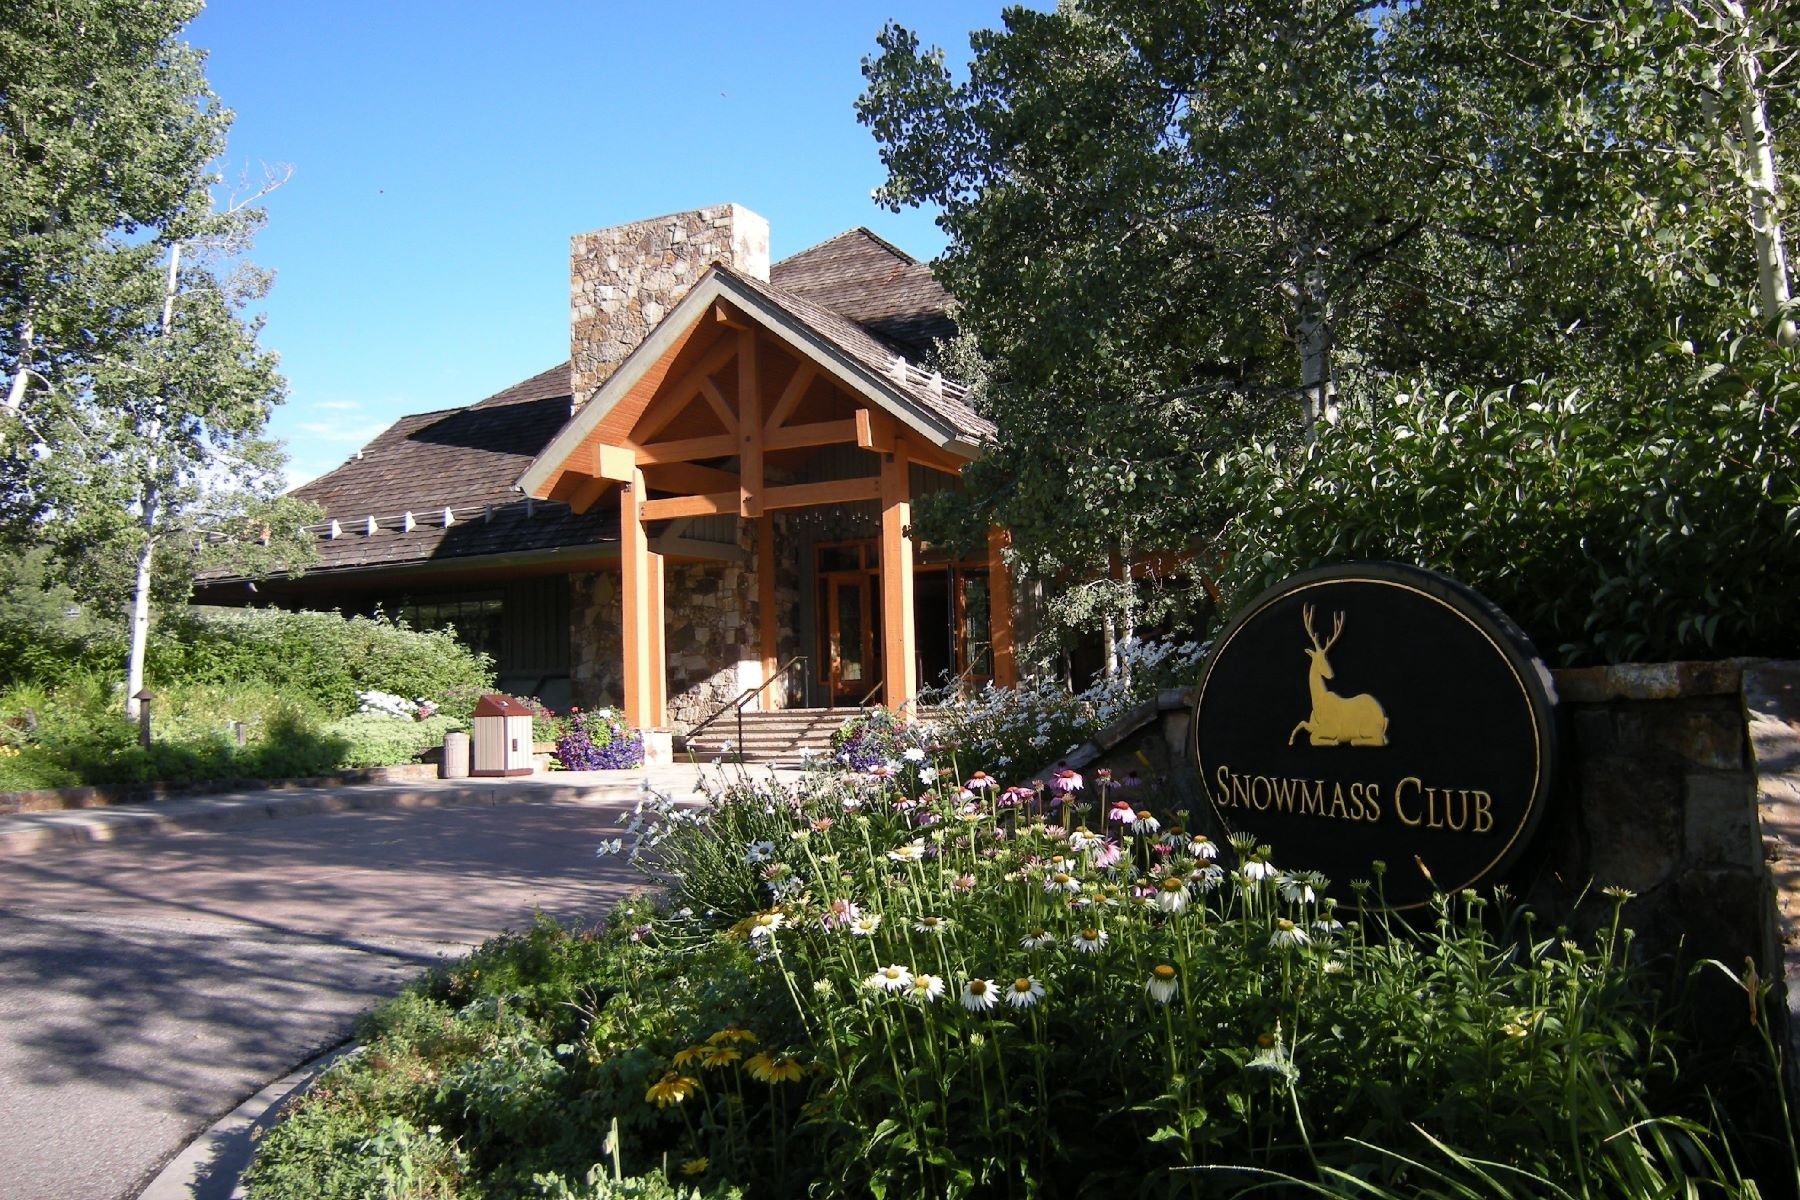 부분 소유권 용 매매 에 Snowmass Club Fractional Interest 3-68 0239 Snowmass Club Circle Unit 123, Snowmass Village, 콜로라도, 81615 미국